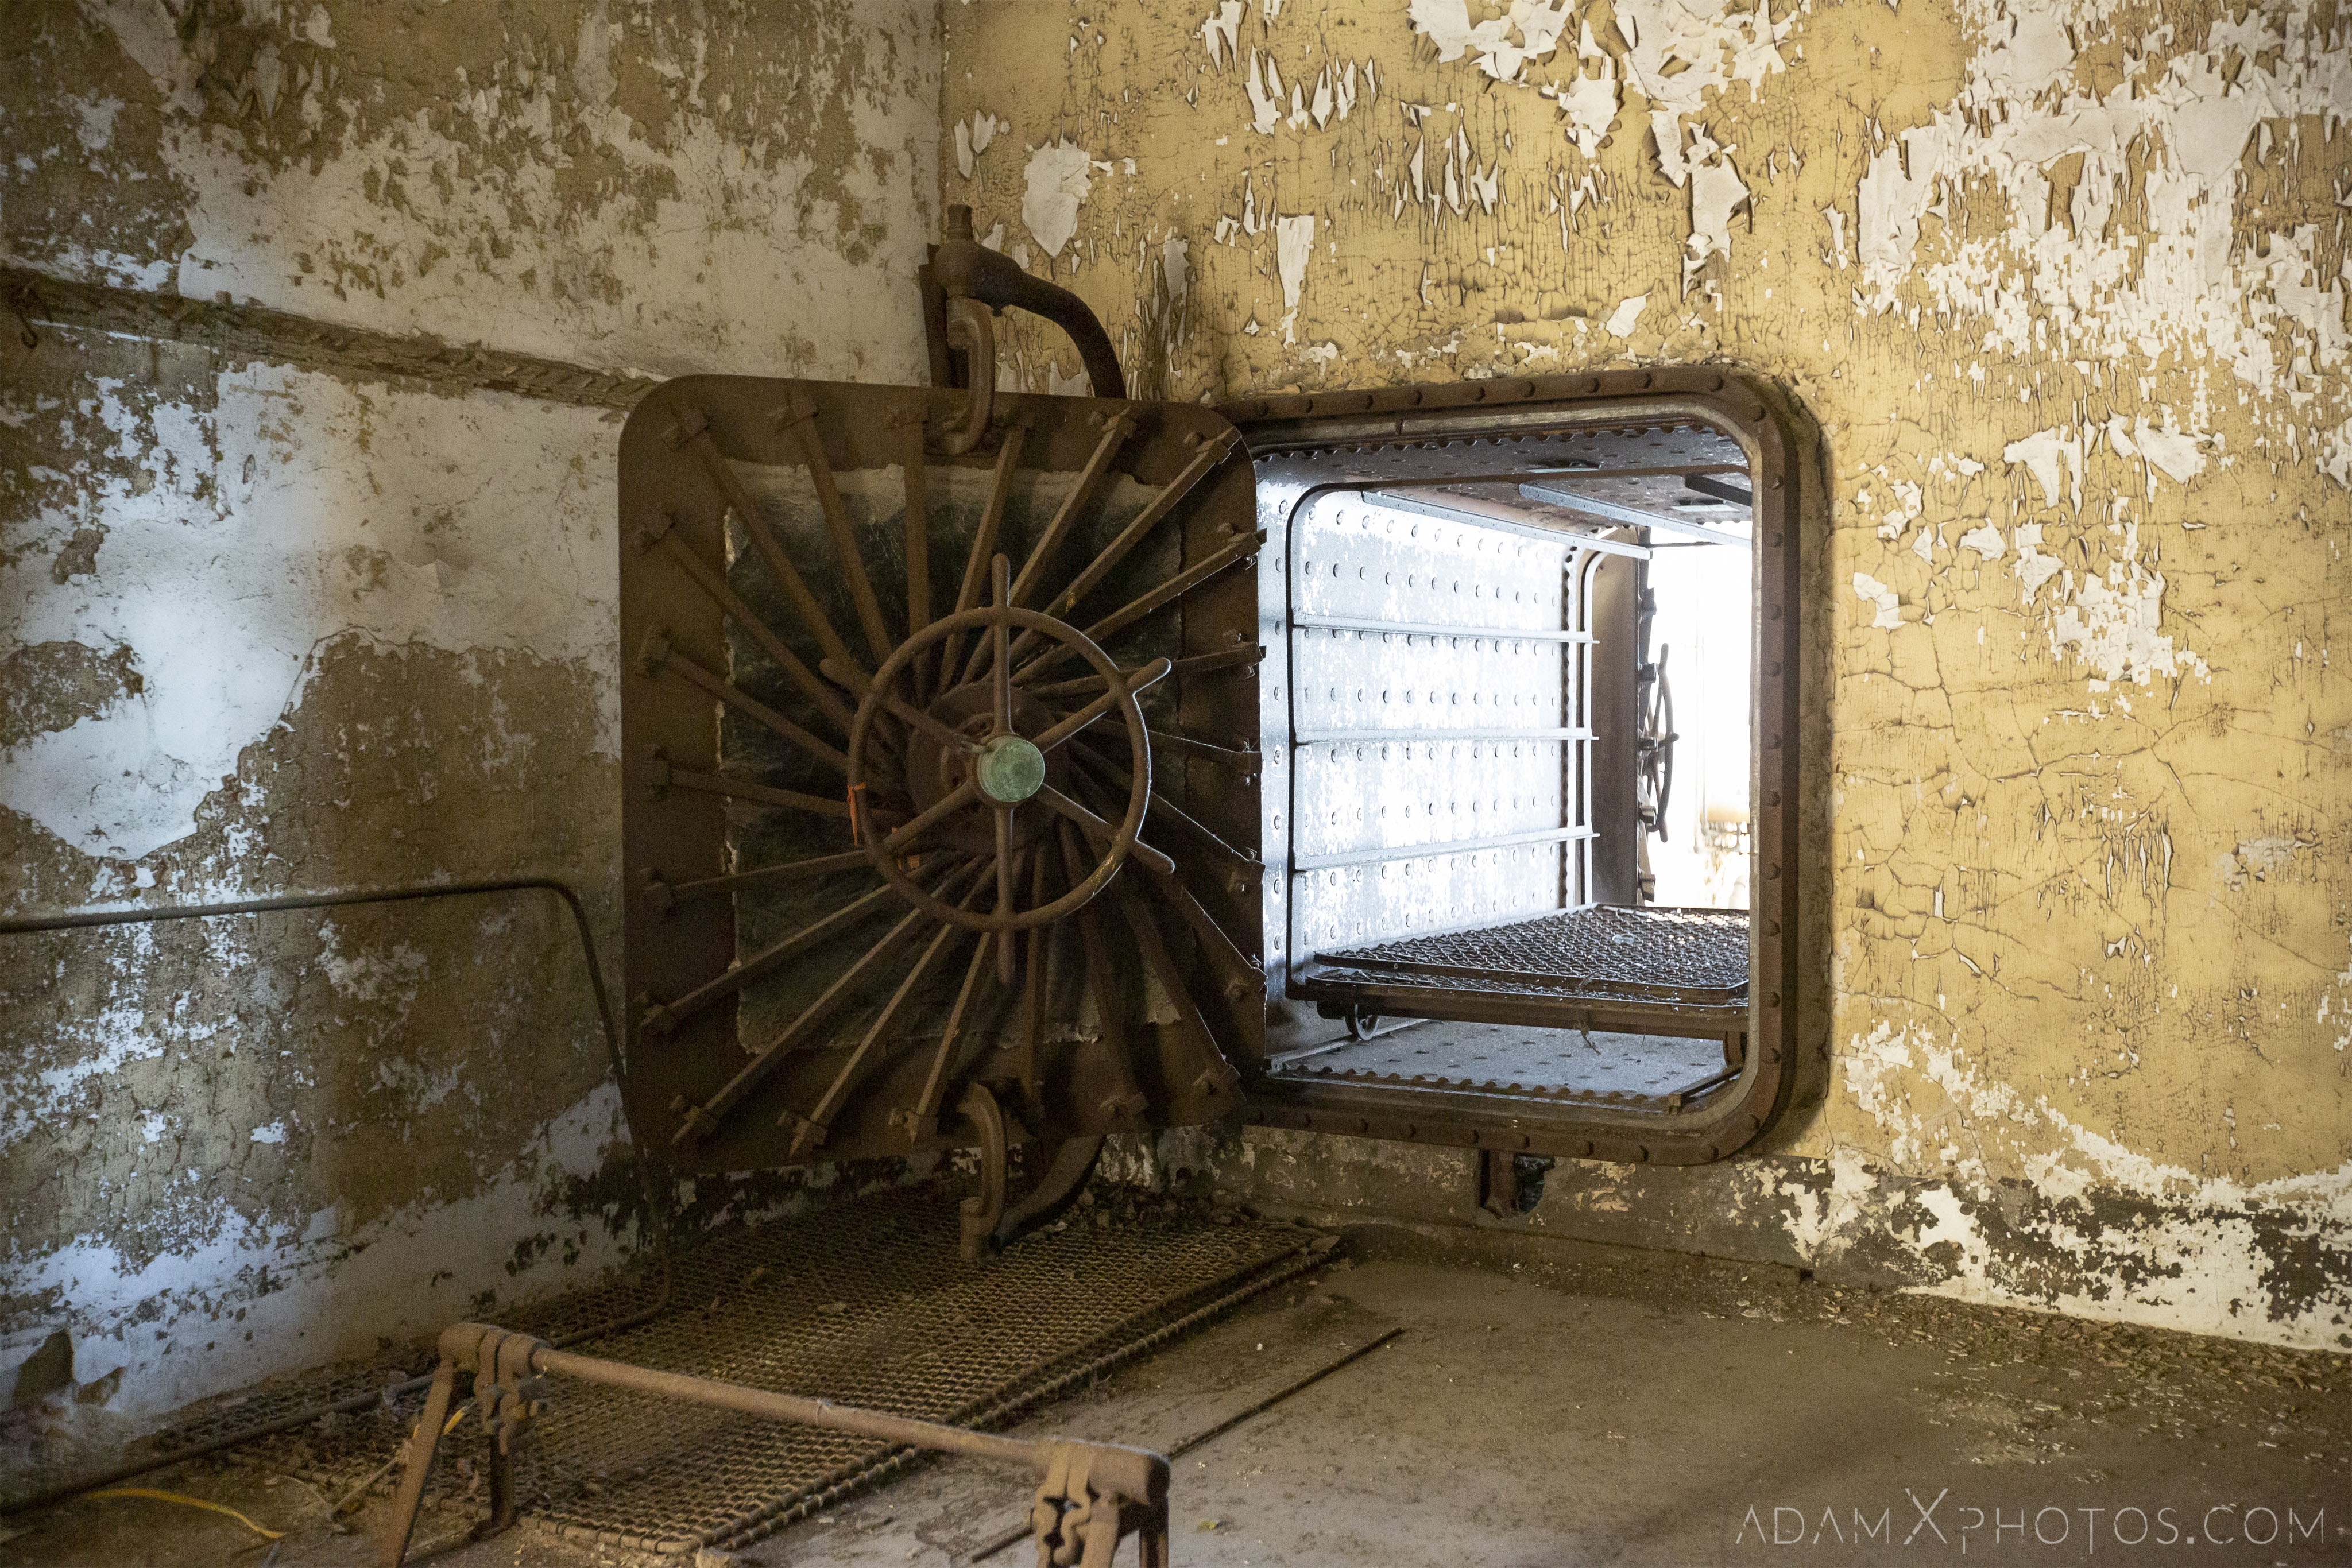 Autoclave for mattresses Ellis Island Immigrant Hospital New York USPHS Hospital #43 Adam X Adamxphotos Urbex Urban Exploration Access 2017 Abandoned decay ruins lost forgotten derelict location creepy haunting eerie